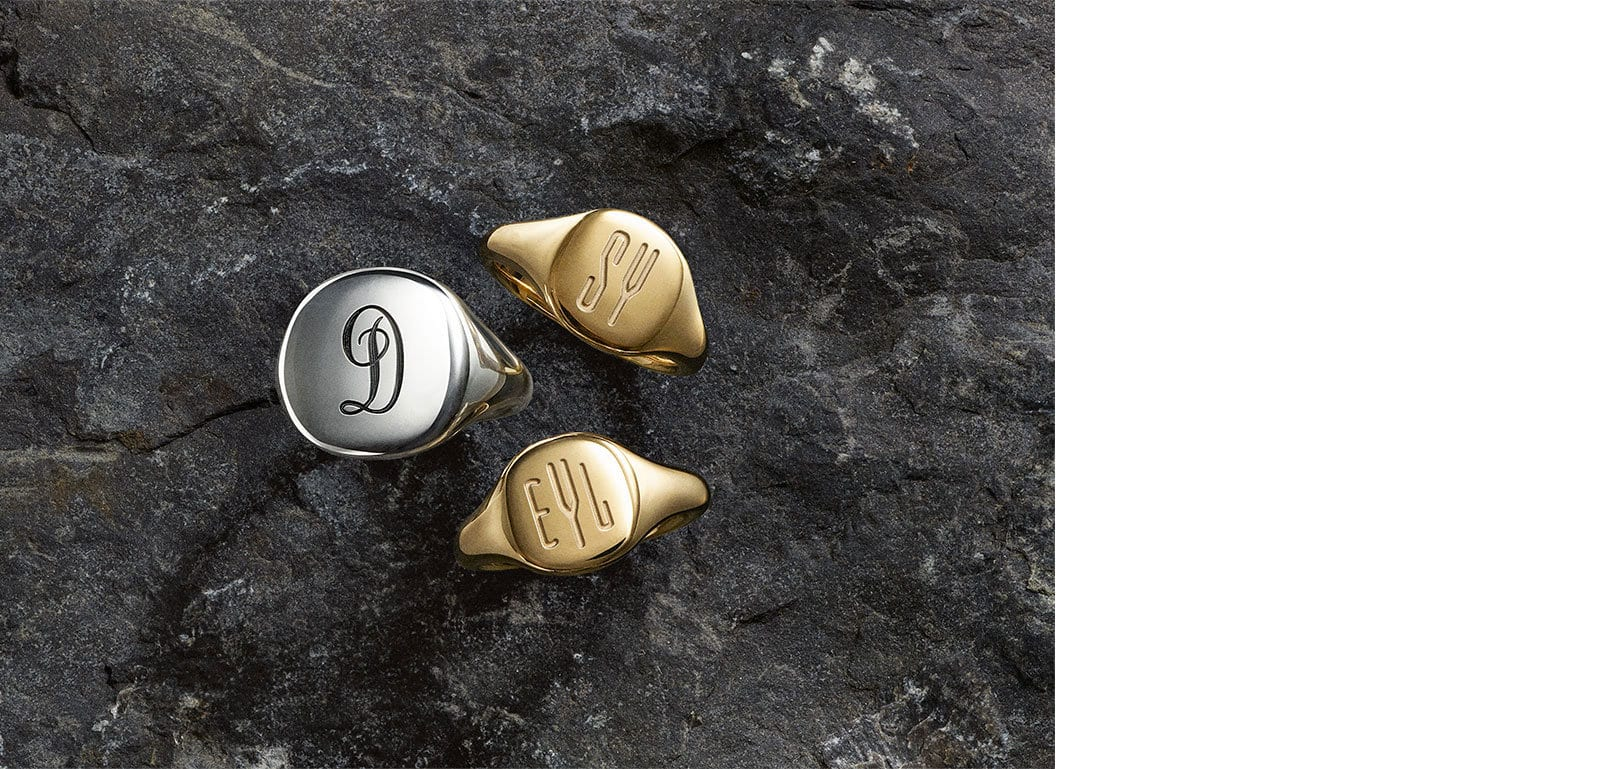 David Yurman Pinky Rings in sterling silver and 18K yellow gold with custom-engraved monograms.